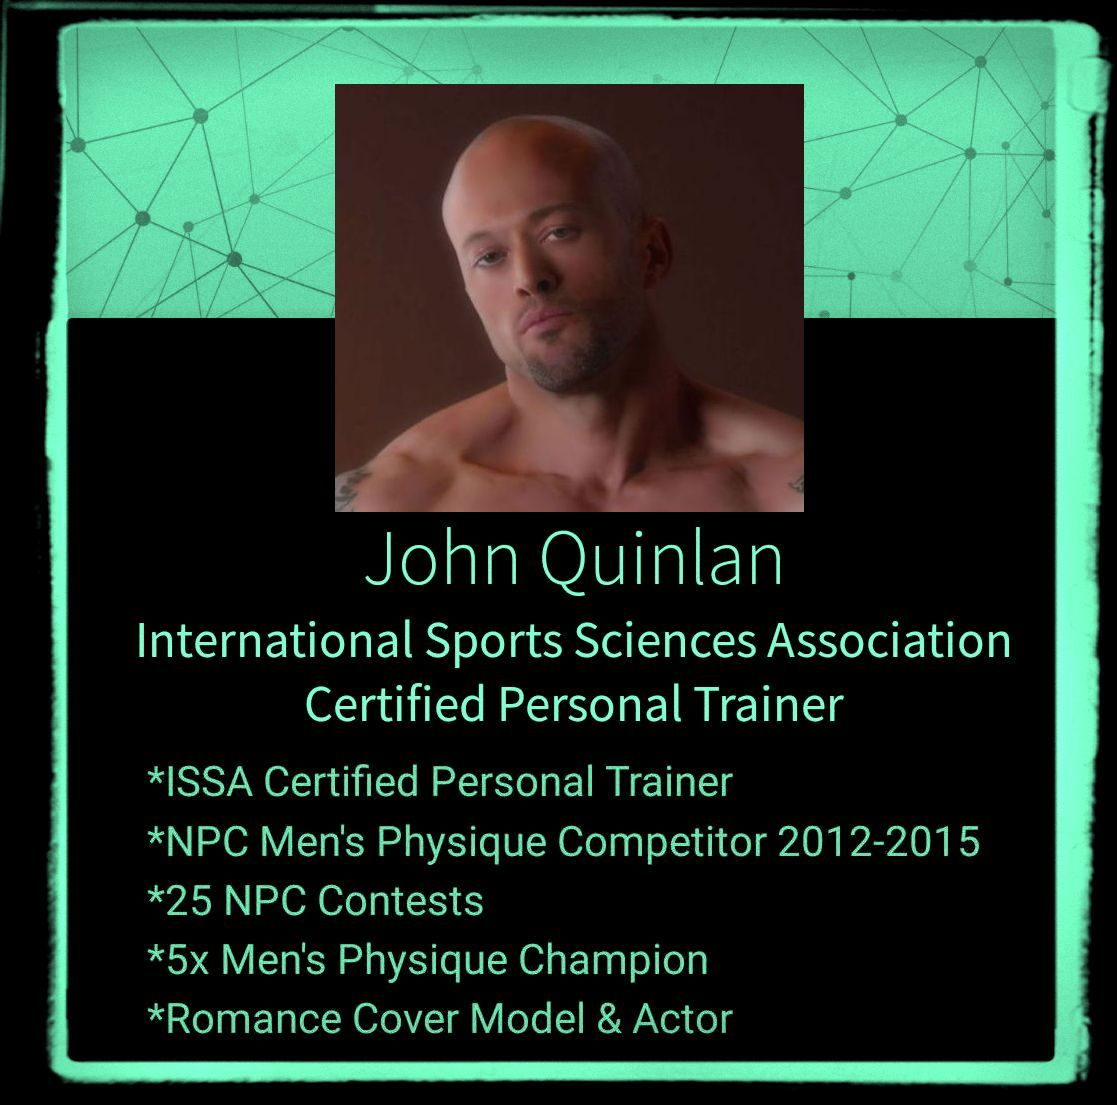 Issa certified personal trainer actor model john joseph quinlan certified personal trainer john joseph quinlan 1betcityfo Images